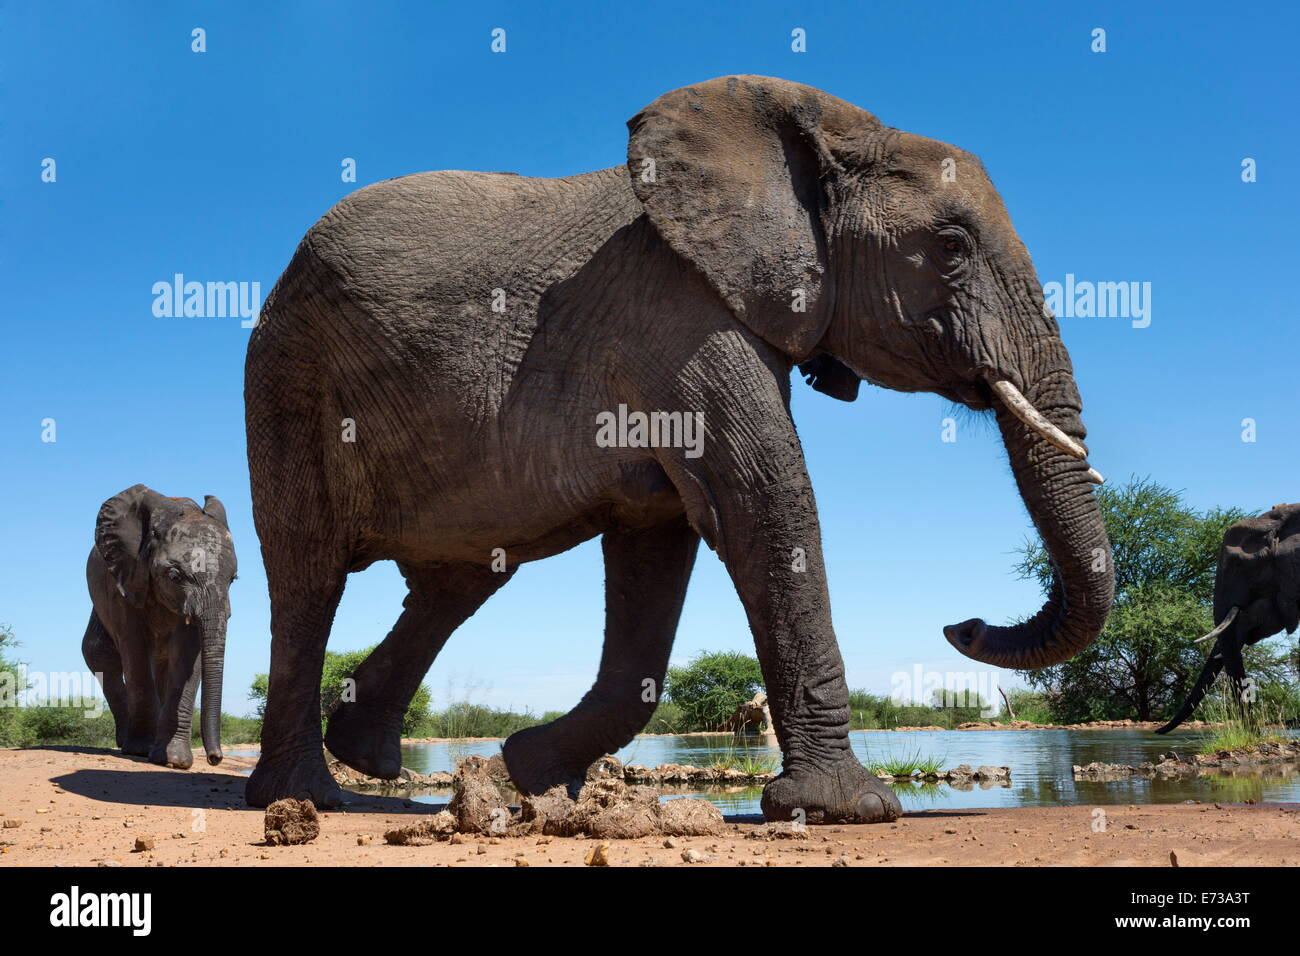 African elephants (Loxodonta africana) at waterhole, Madikwe Game Reserve, North West Province, South Africa, Africa - Stock Image